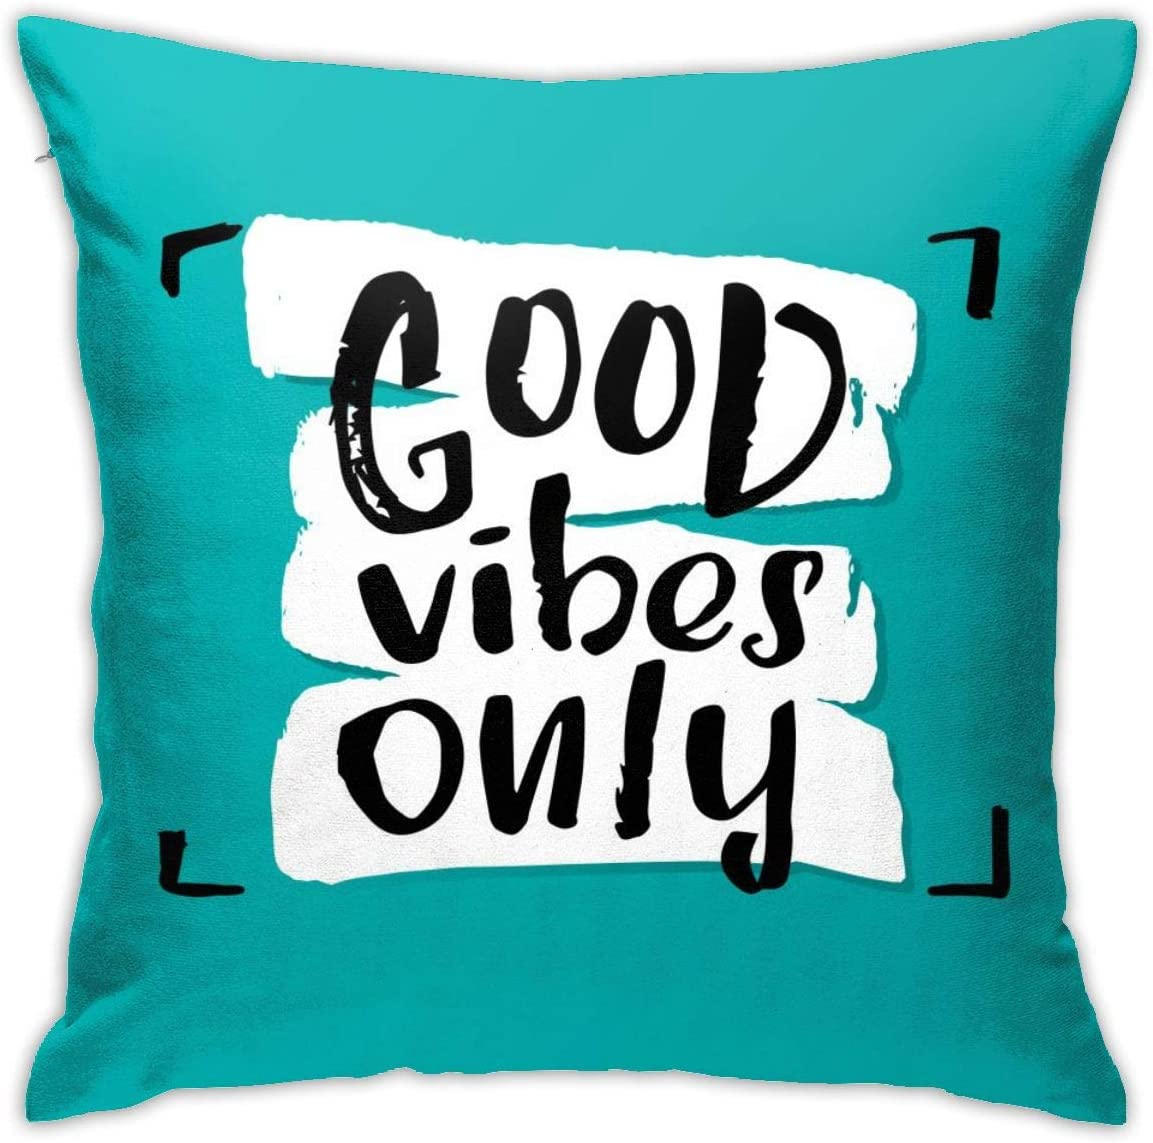 Yaateeh Motivational Quotes Good Vibes Only Teal Turquoise Throw Pillow Covers Decorative 18x18 Inch Pillowcase Square Cushion Cases for Home Sofa Bedroom Livingroom